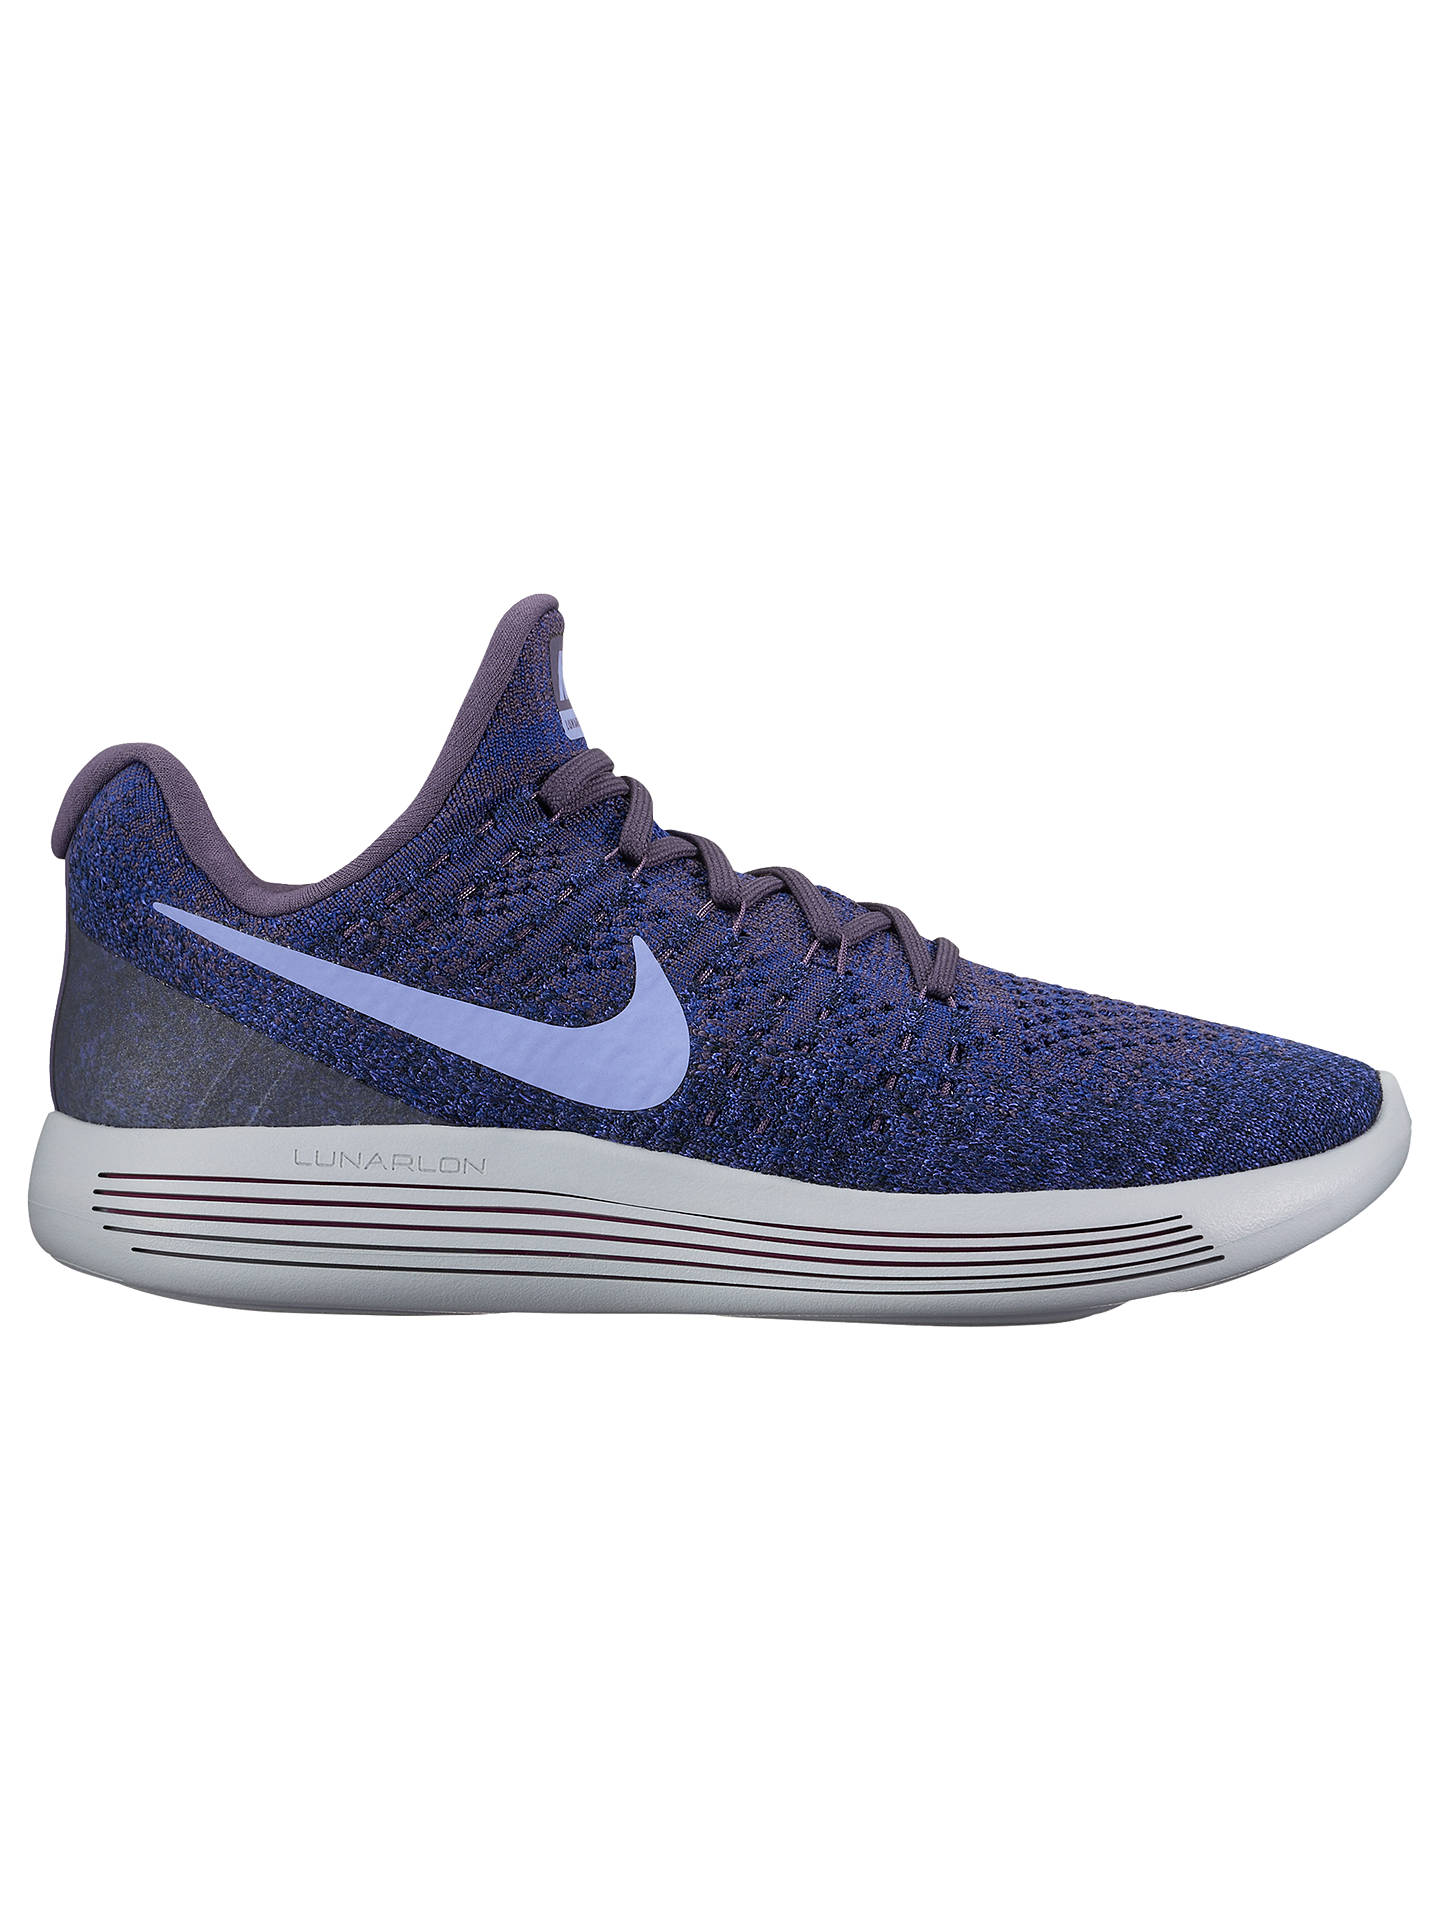 1dc6c3ae76639e Buy Nike LunarEpic Low Flyknit 2 Women s Running Shoes